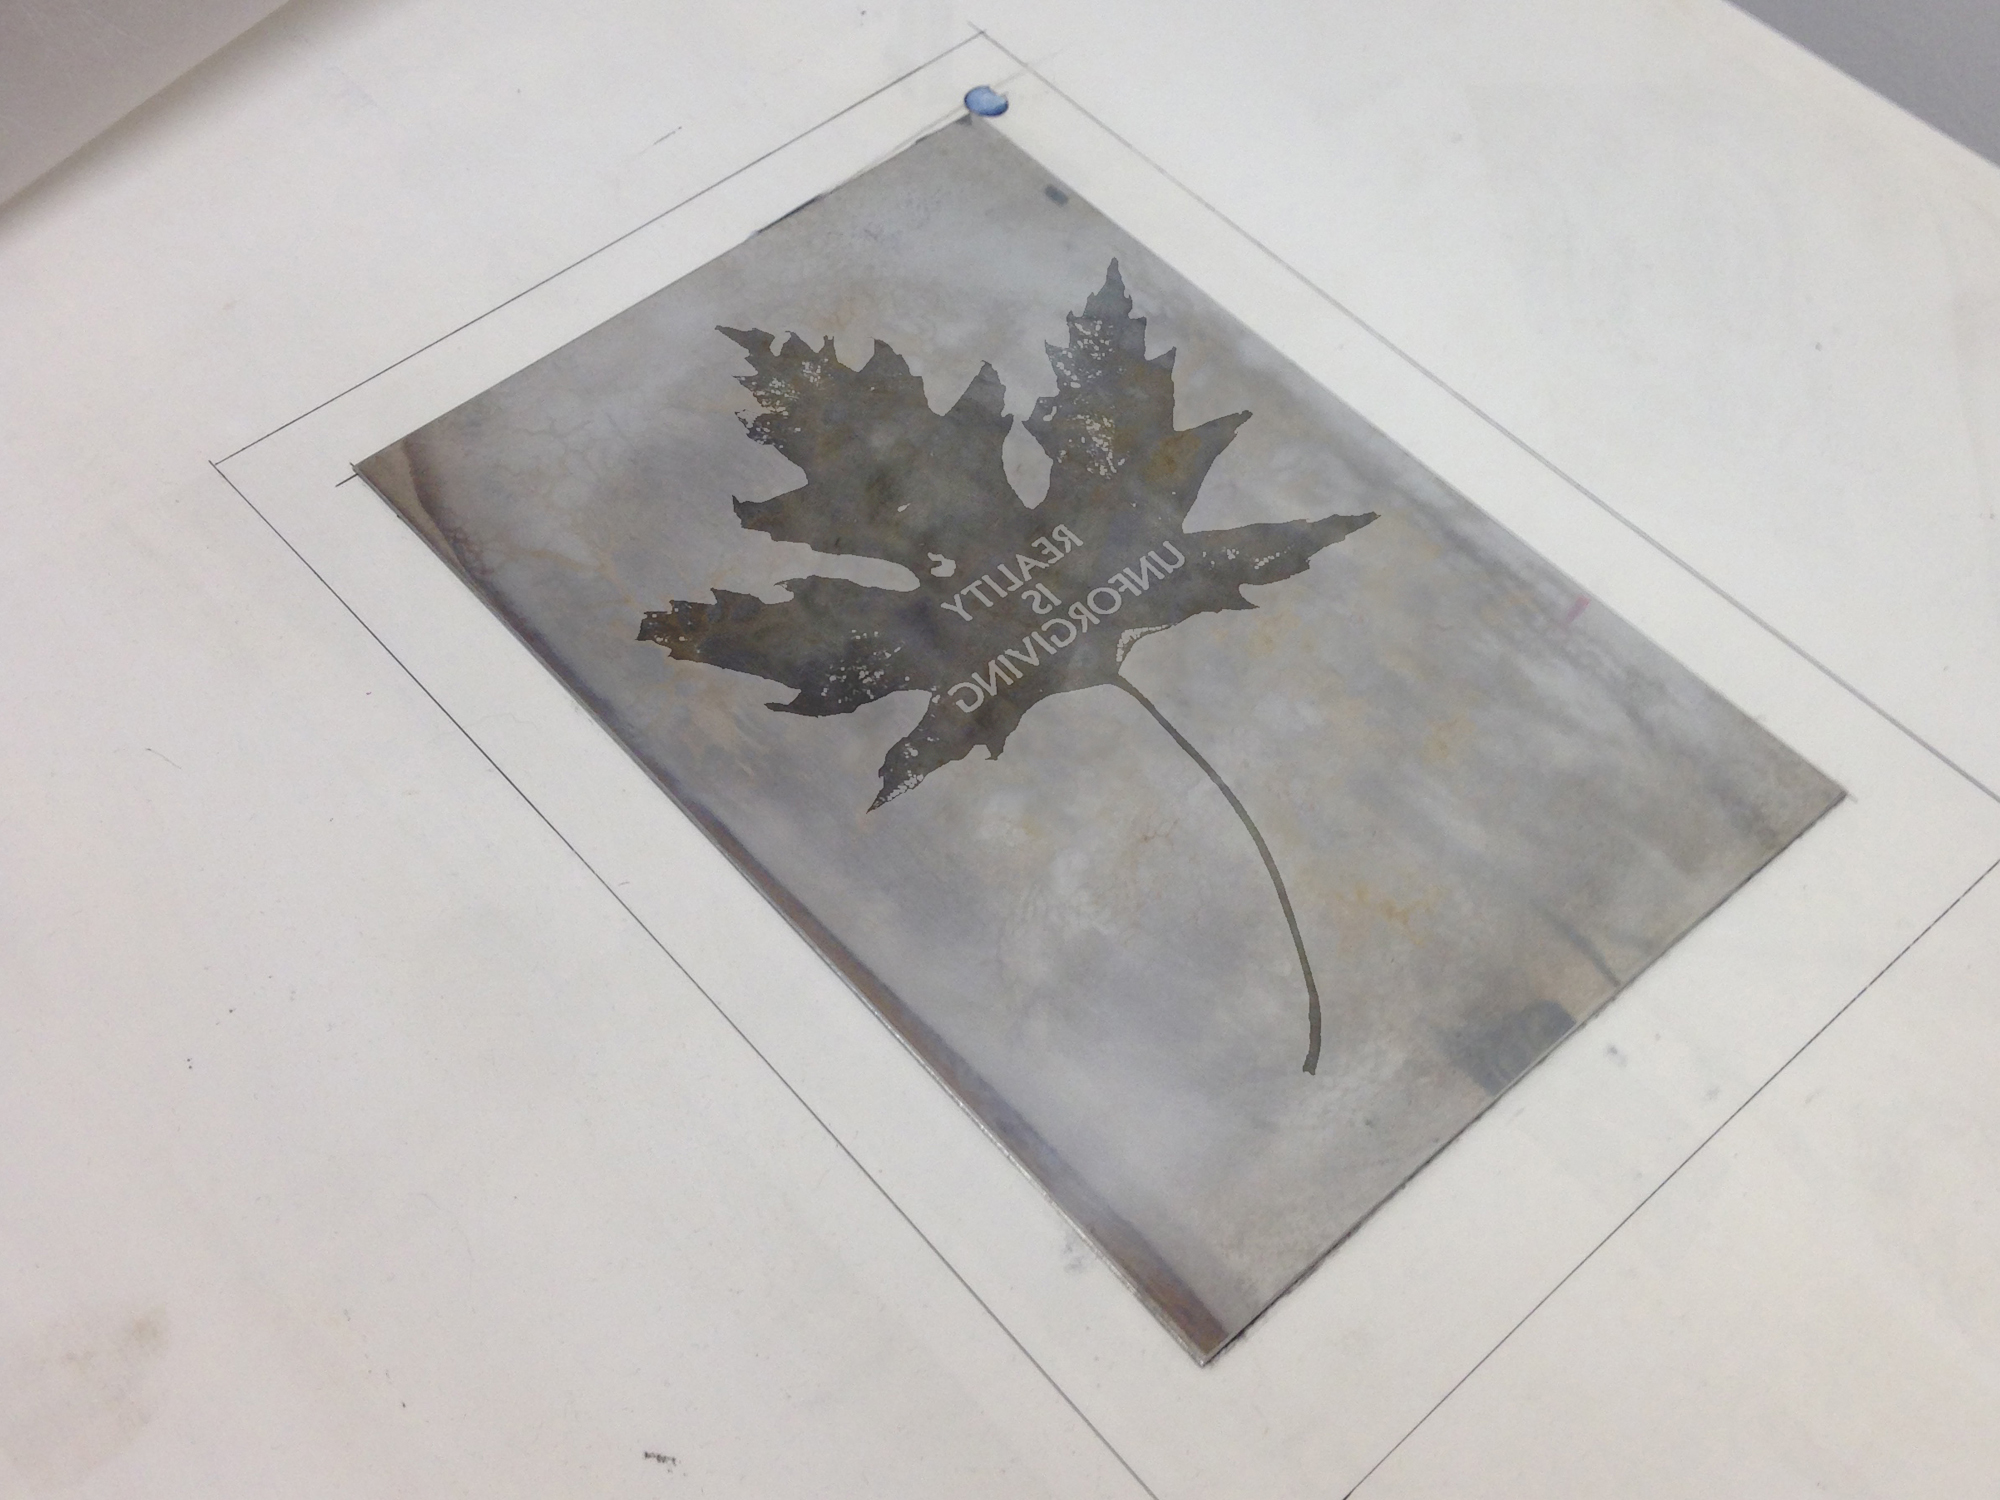 Etching plate cleaned, dried and ready for inking